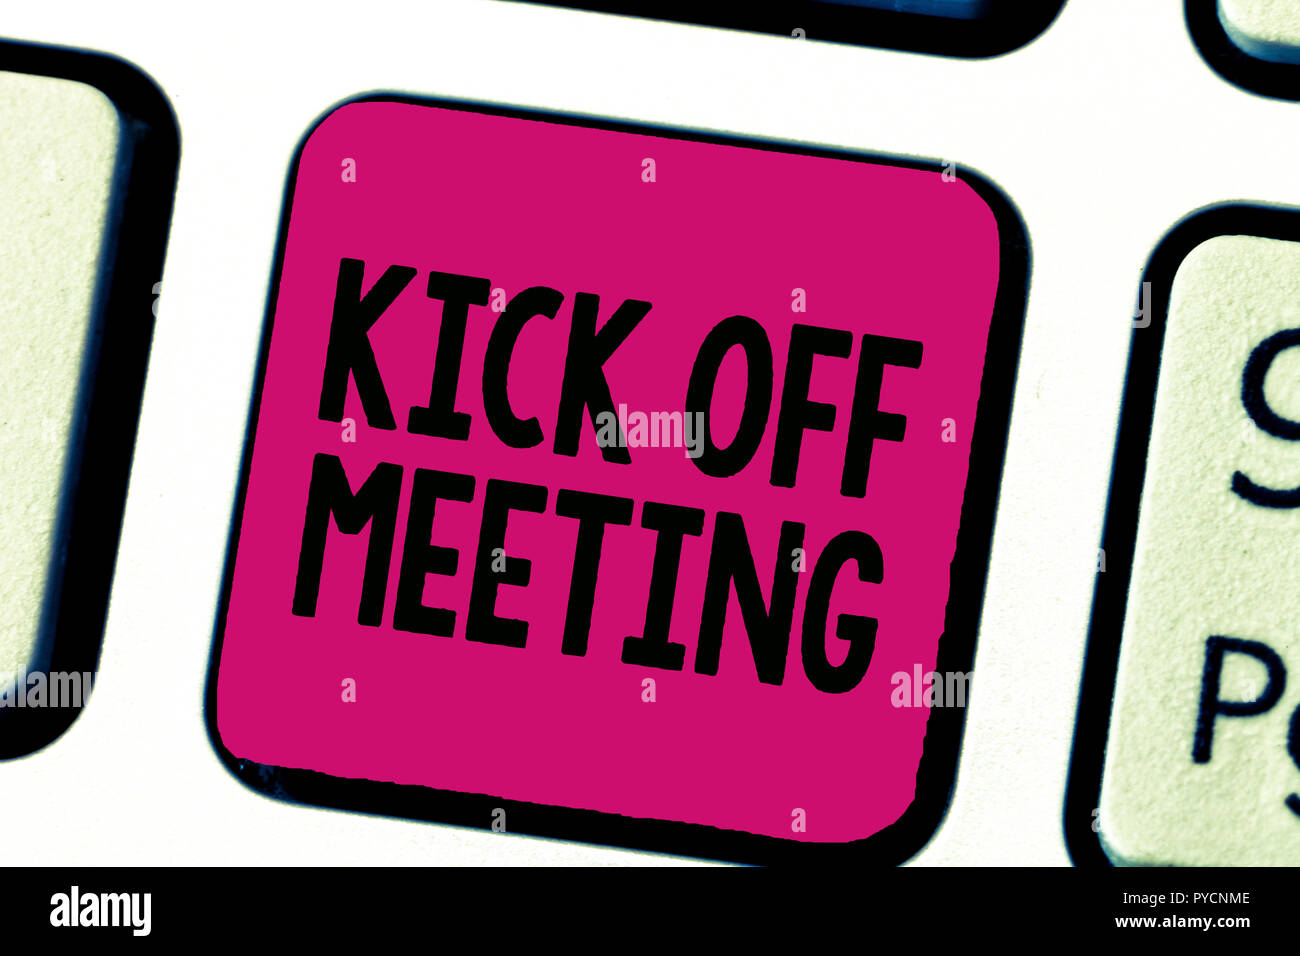 Writing note showing Kick Off Meeting. Business photo showcasing getting fired from your team private talking about company. - Stock Image